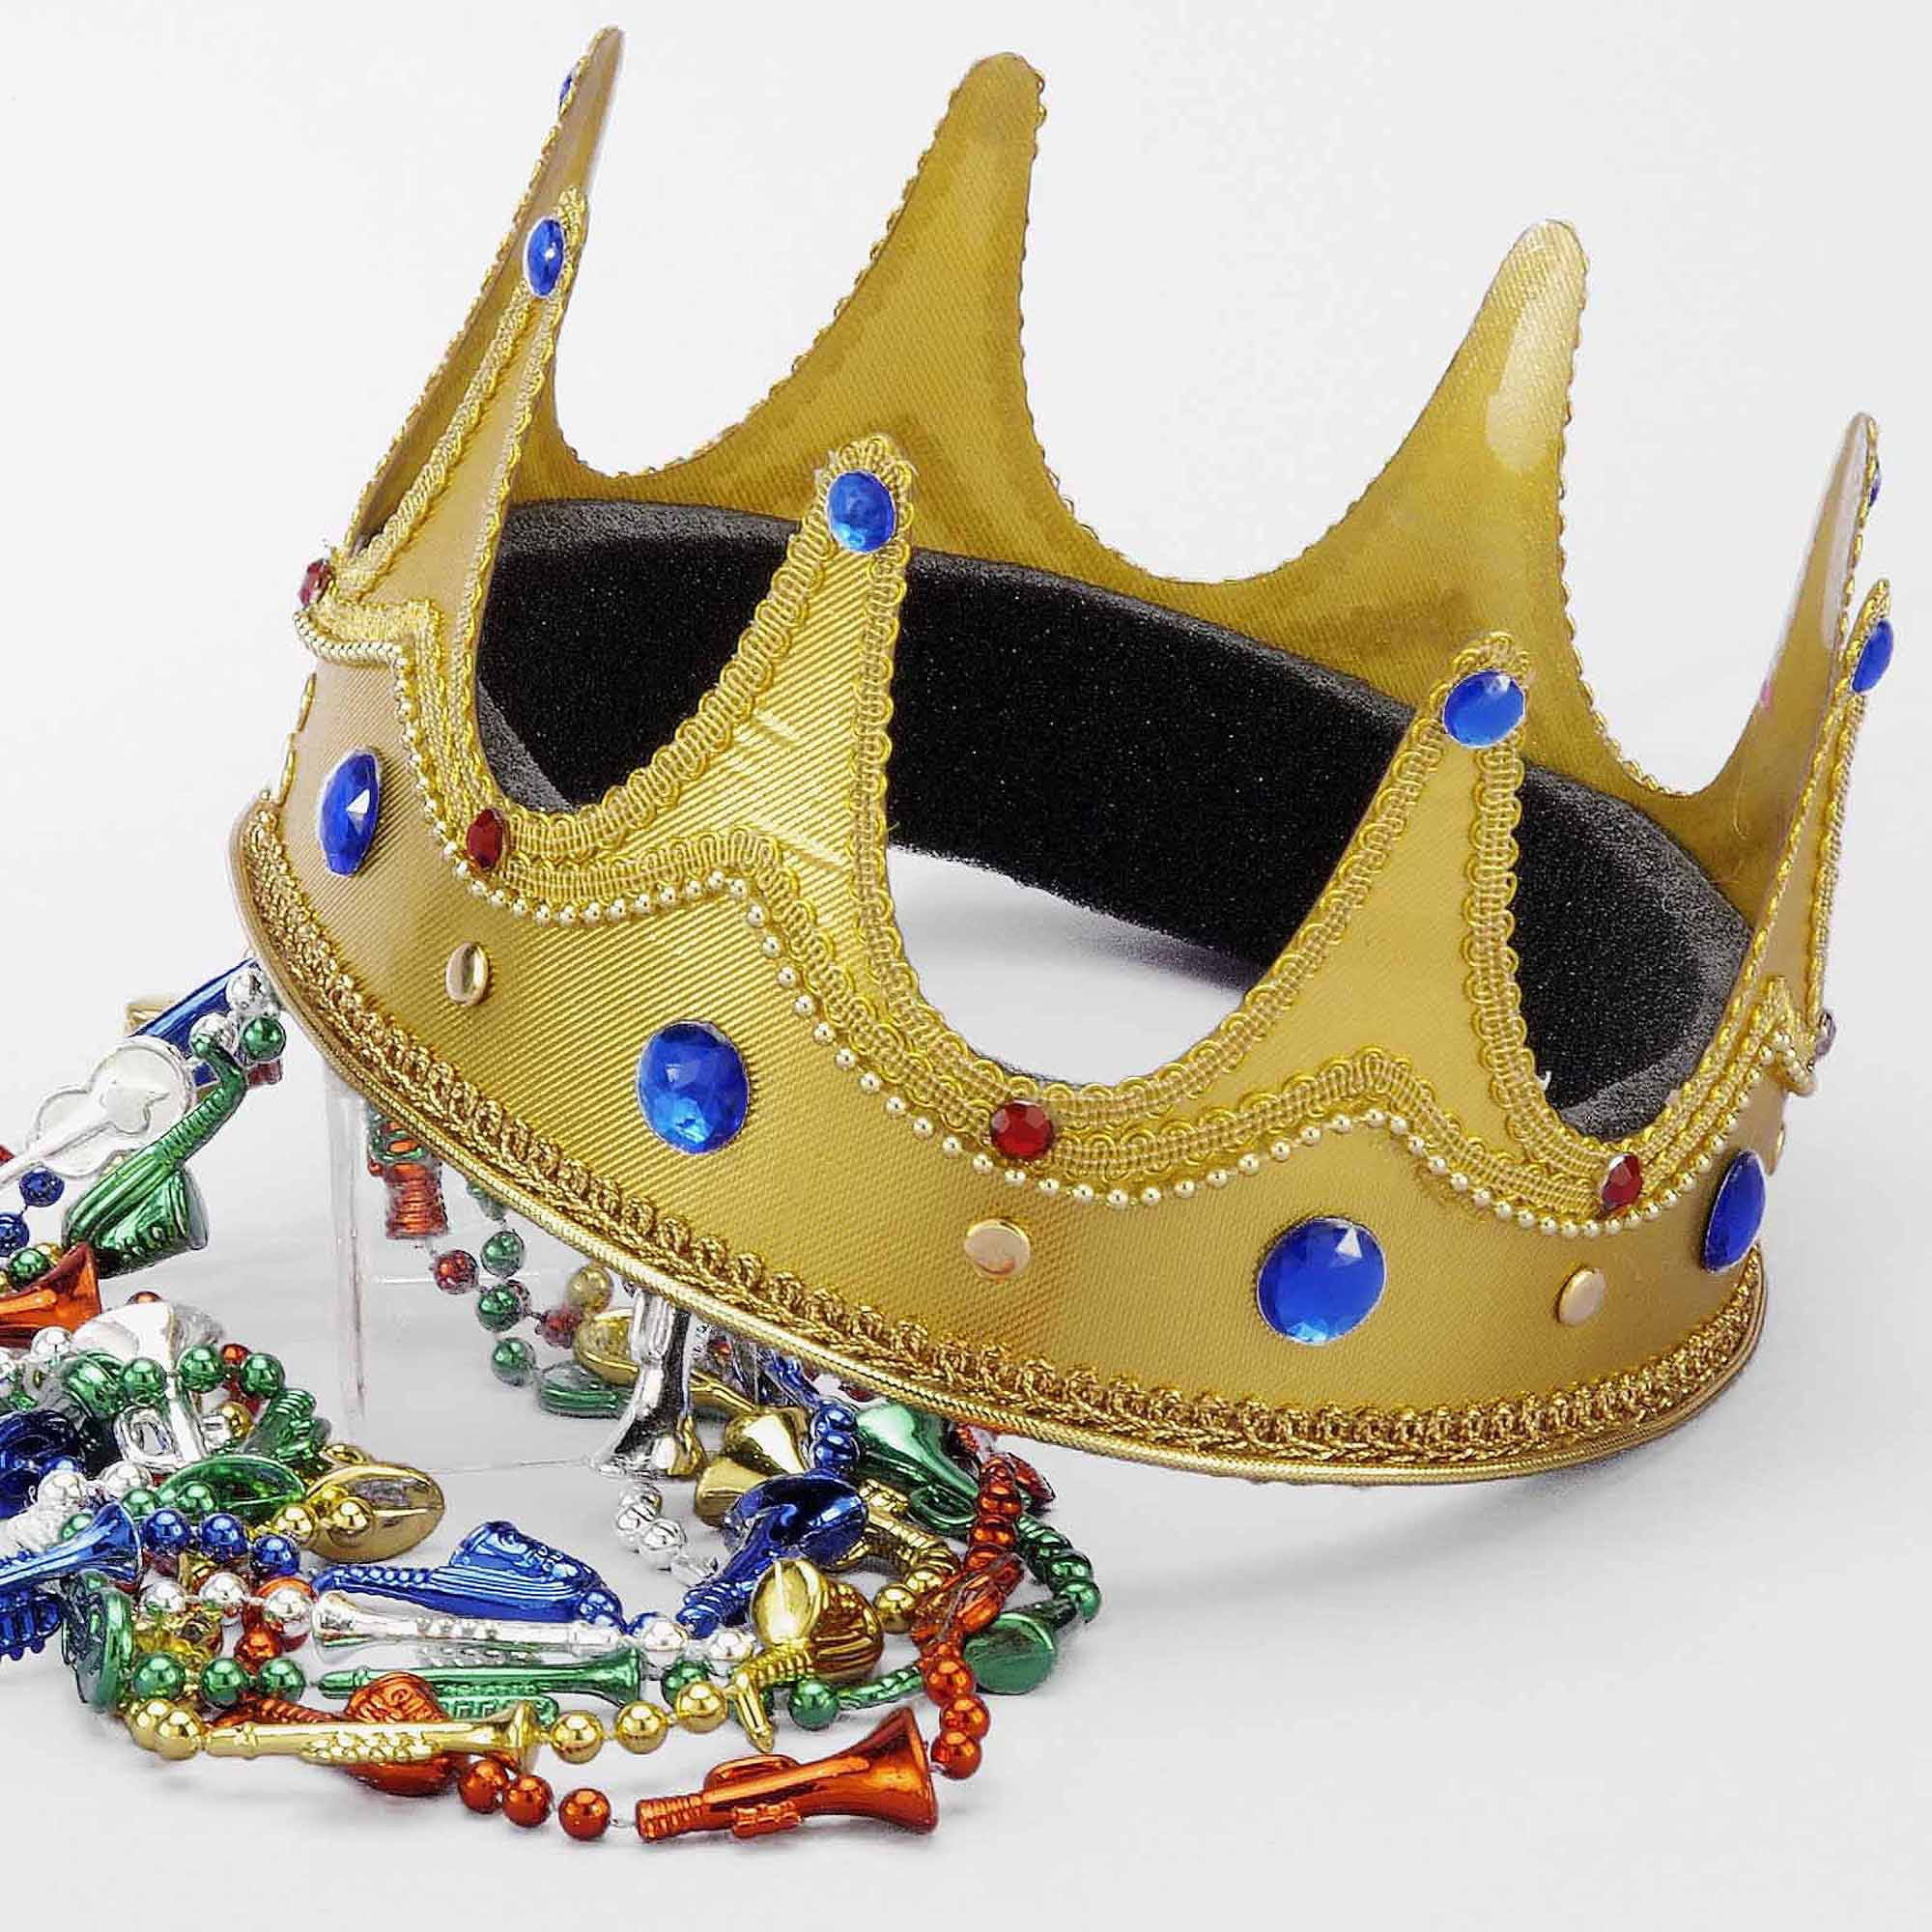 King Crown Fabric Adult Halloween Costume Accessory